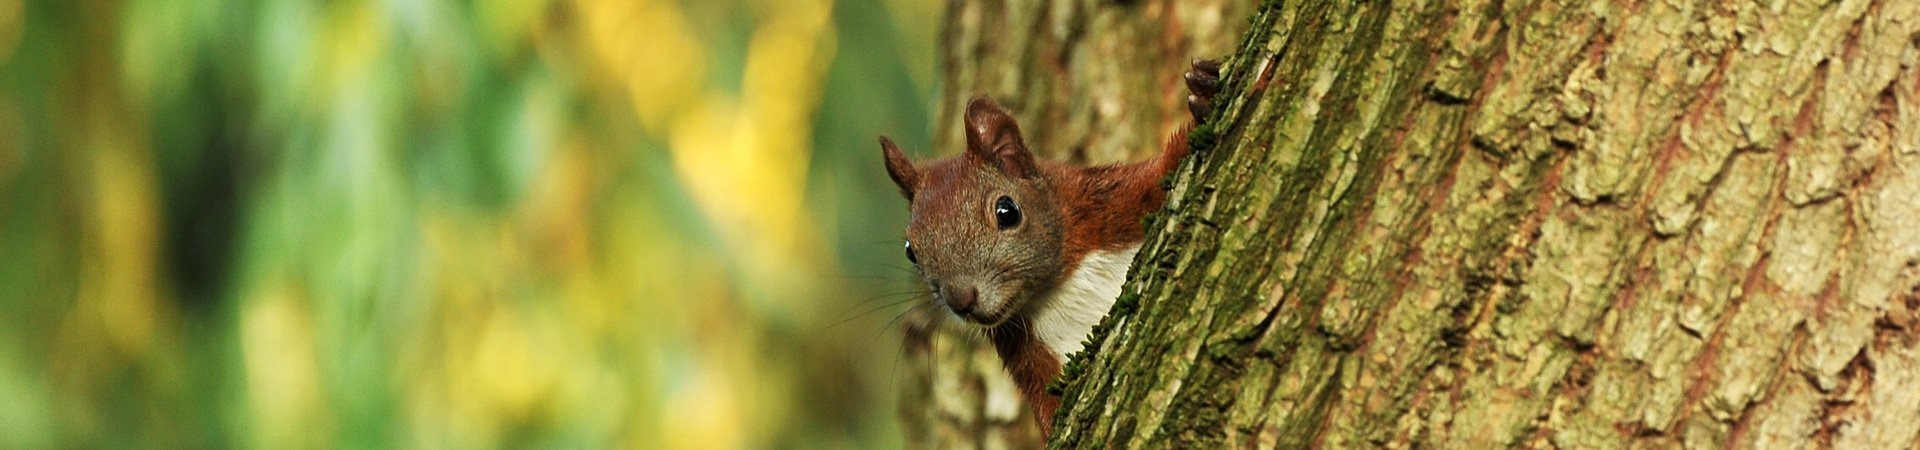 6 Signs You May Have Squirrels in Your Attic or Roof | Any Pest